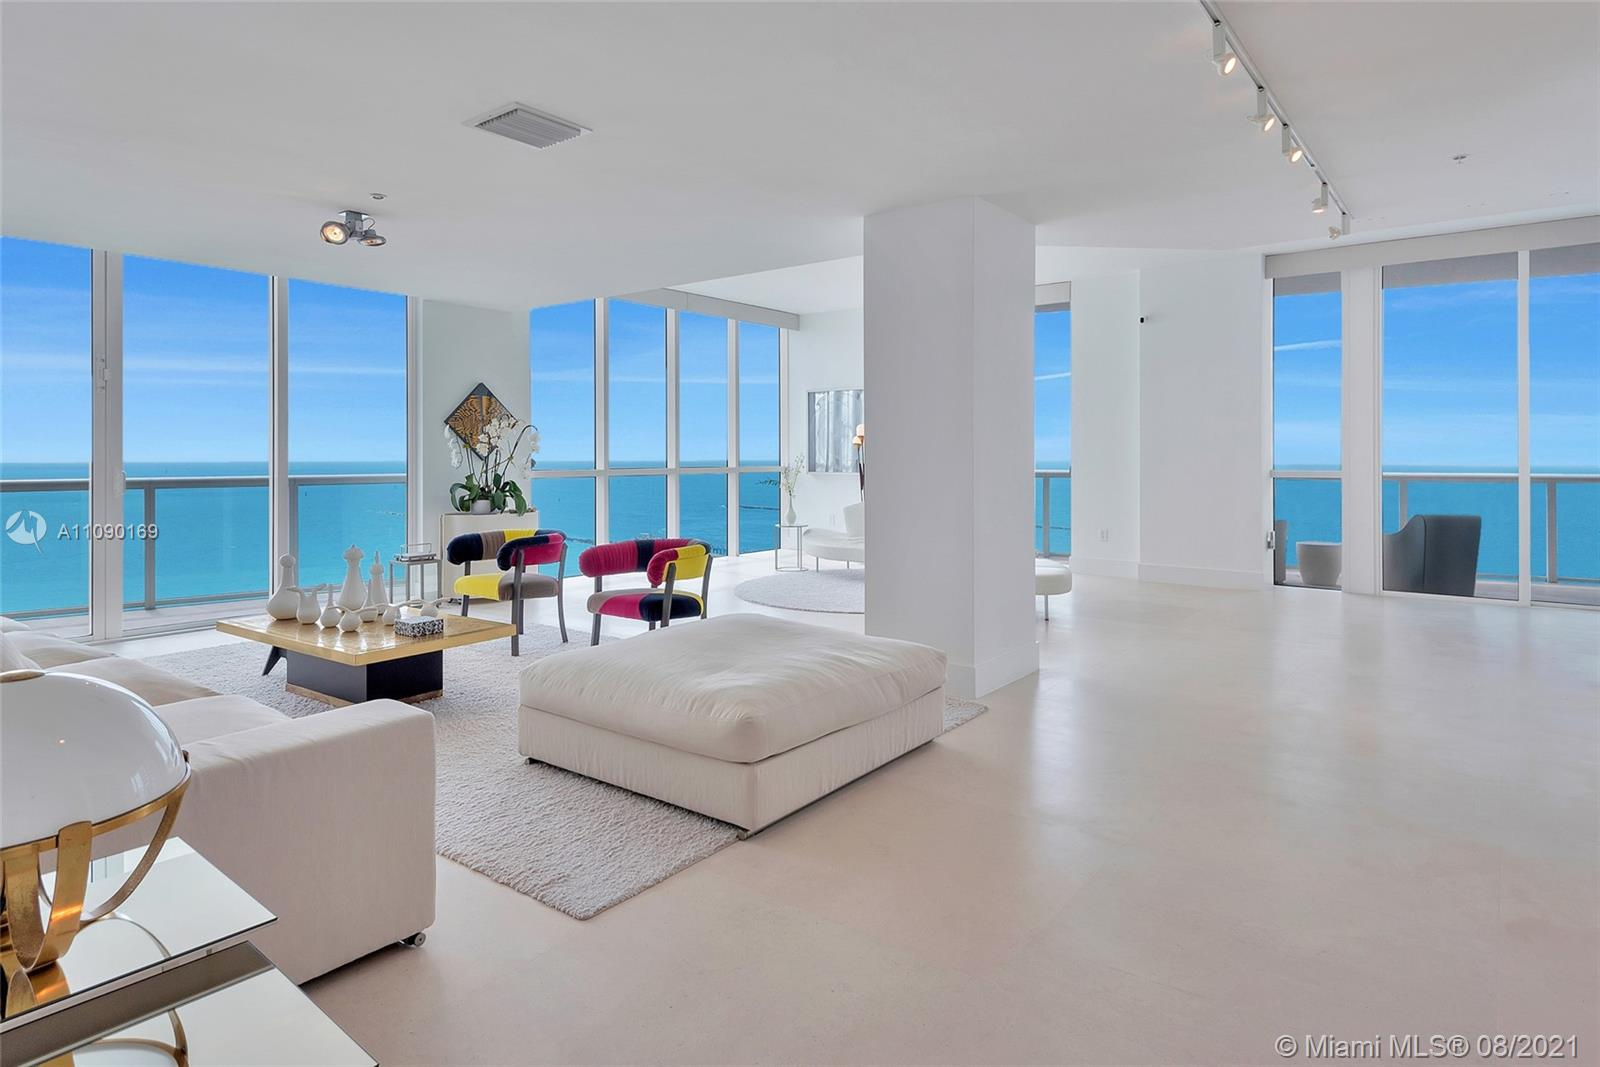 Step off the elevator to stunning bright ocean views, this masterfully designed home delivers the wow factor. Combining only the best 2 lines in the N Tower it epitomizes a discerning life-style. 3 Bed, 4 Bath + Den corner unit features 3,400sqft of the most sophisticated design. Master bedroom offers 2 walk-in closets and a tranquil spa bathroom. 4 different balconies open up to luminous spectacular views. Kitchen features Miele and Sub-Zero appliances and amazing views of Fisher Island & Cruise Ships. This immaculate unit allows one to display beautiful art and blend it with impeccable ocean views while enjoying surround sounds coming from the Crestron system. 12-acre beach land with high-end amenities concierge, valet, restaurant, 3 pools, beach services, spa, gym, and 3 tennis courts.